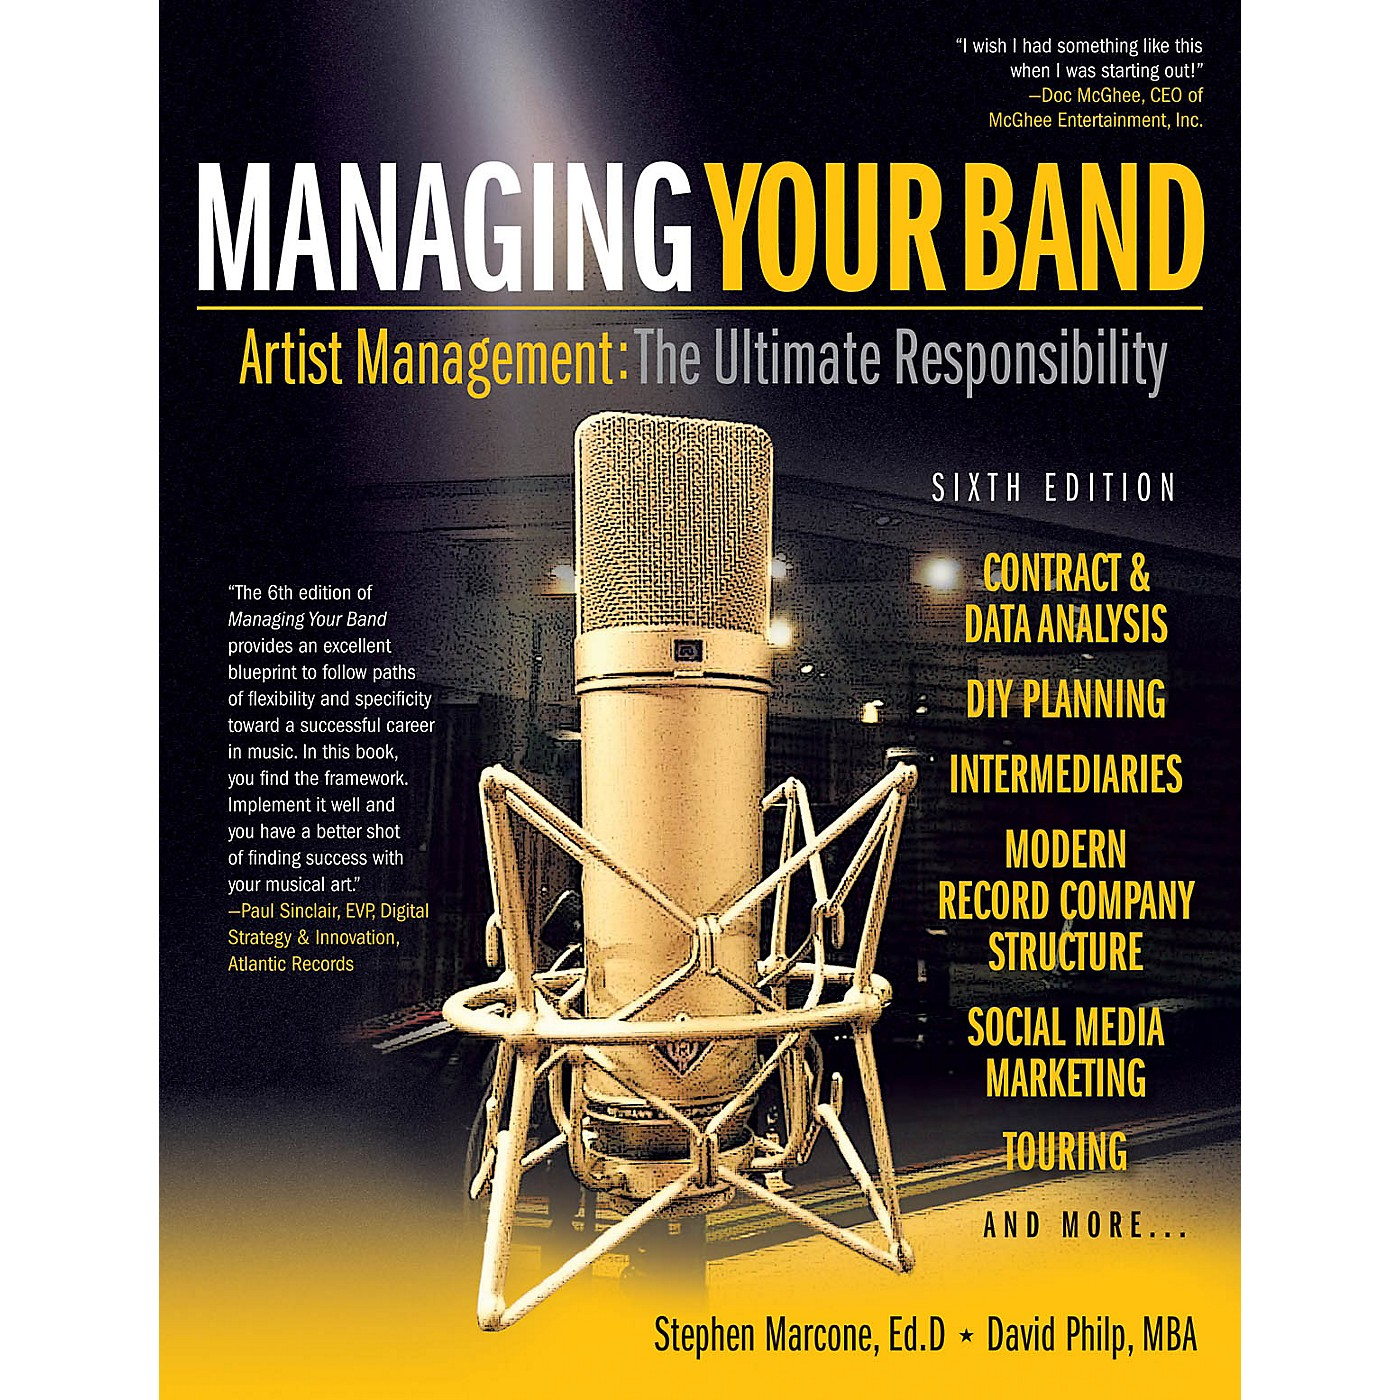 Hal Leonard Managing Your Band - Sixth Edition Book Series Softcover Written by Stephen Marcone thumbnail